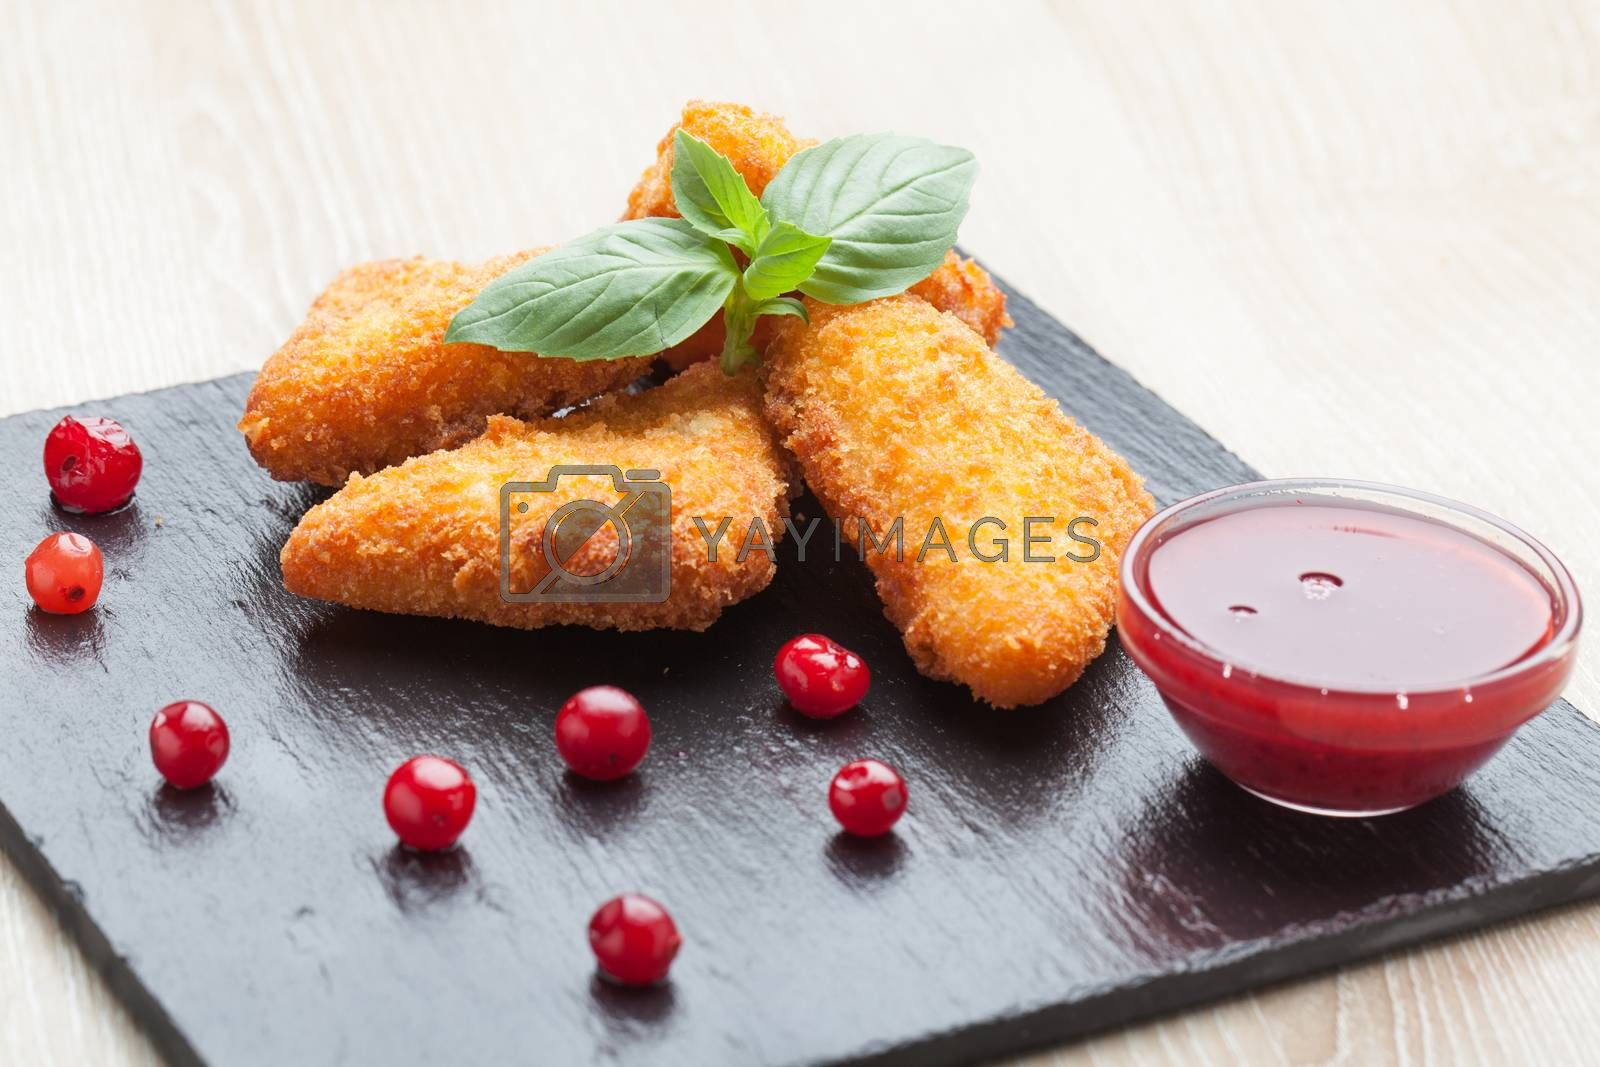 Appetizer fried cheese sticks served with basil, cranberries, and red berry sauce in bowl on black stone plate